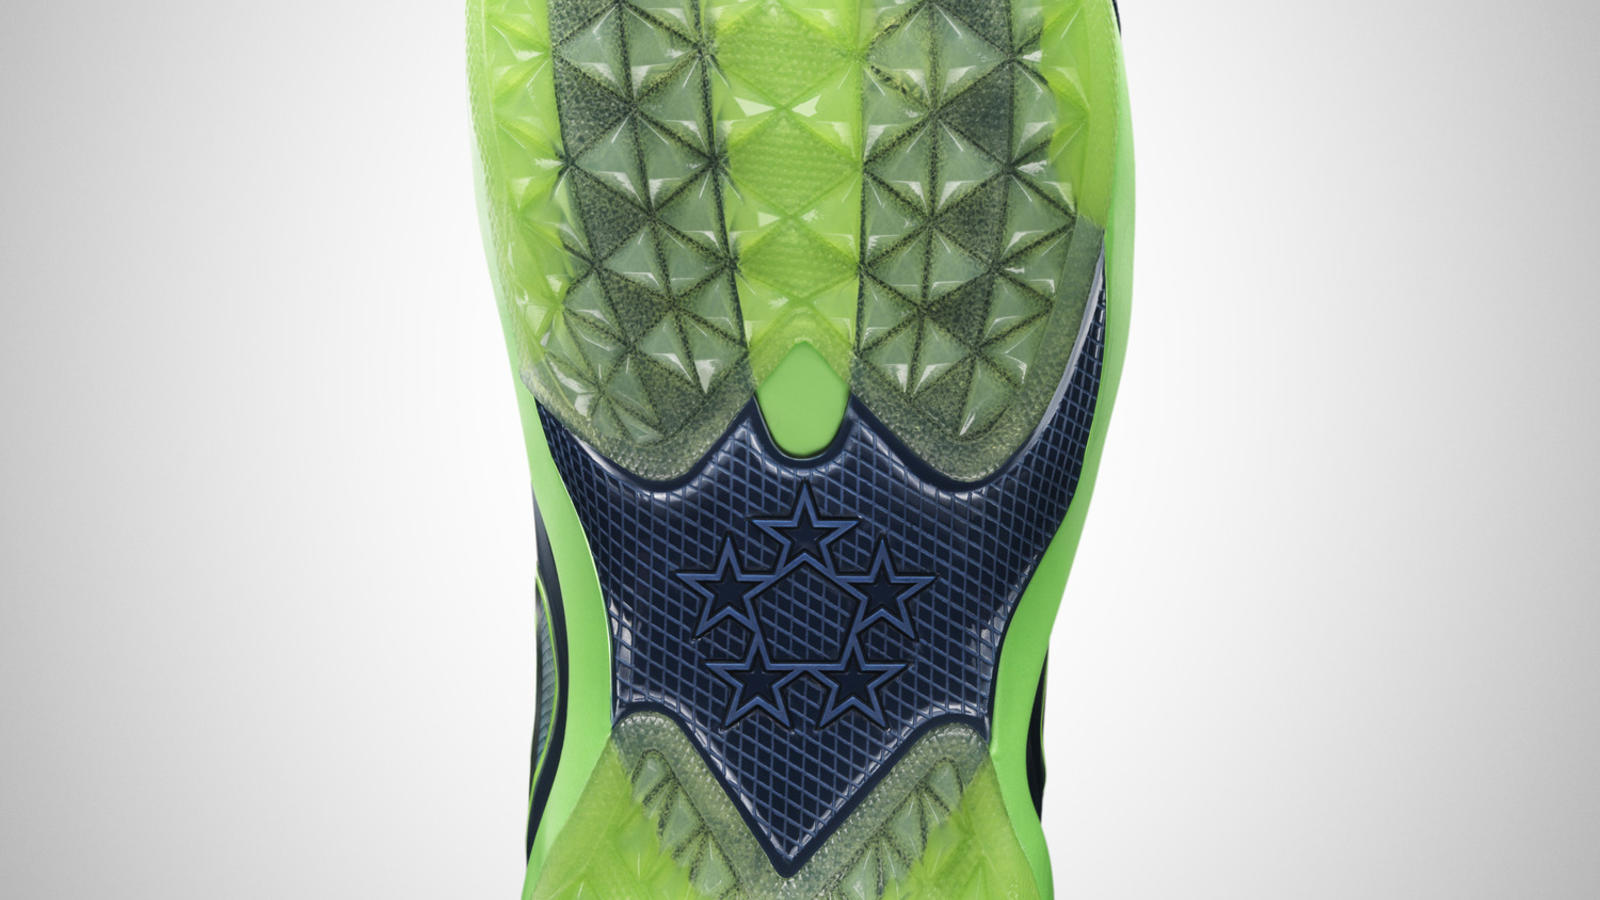 fa14_at_nfb_zoom_fieldgen_654859-wilson_outsole